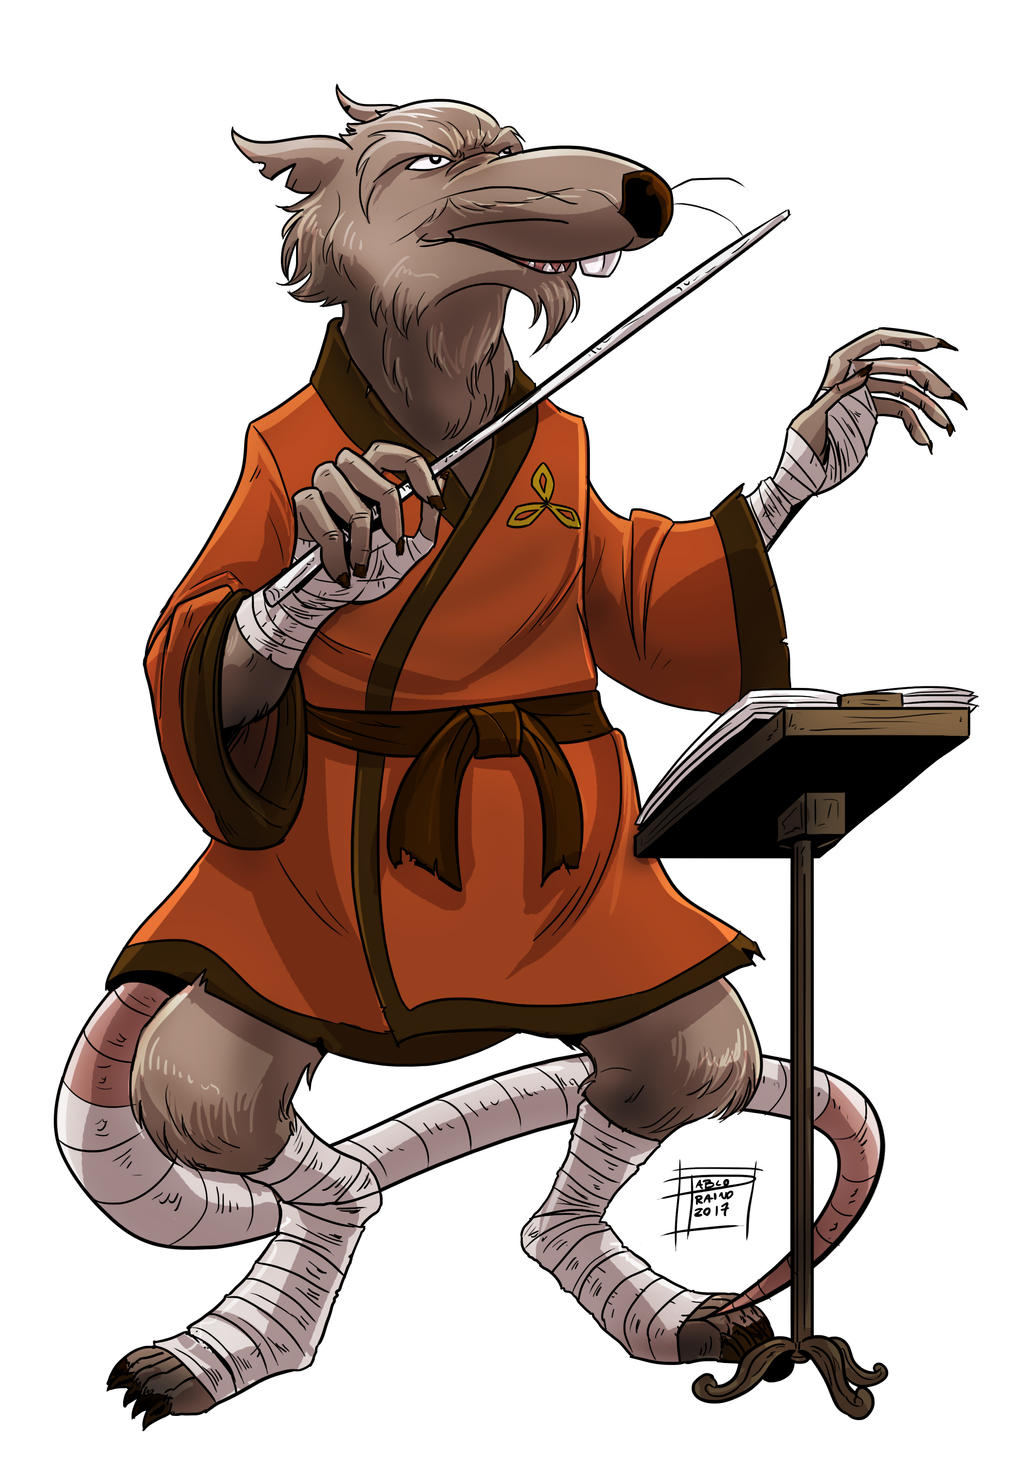 Master Splinter by OptimusPraino on DeviantArt